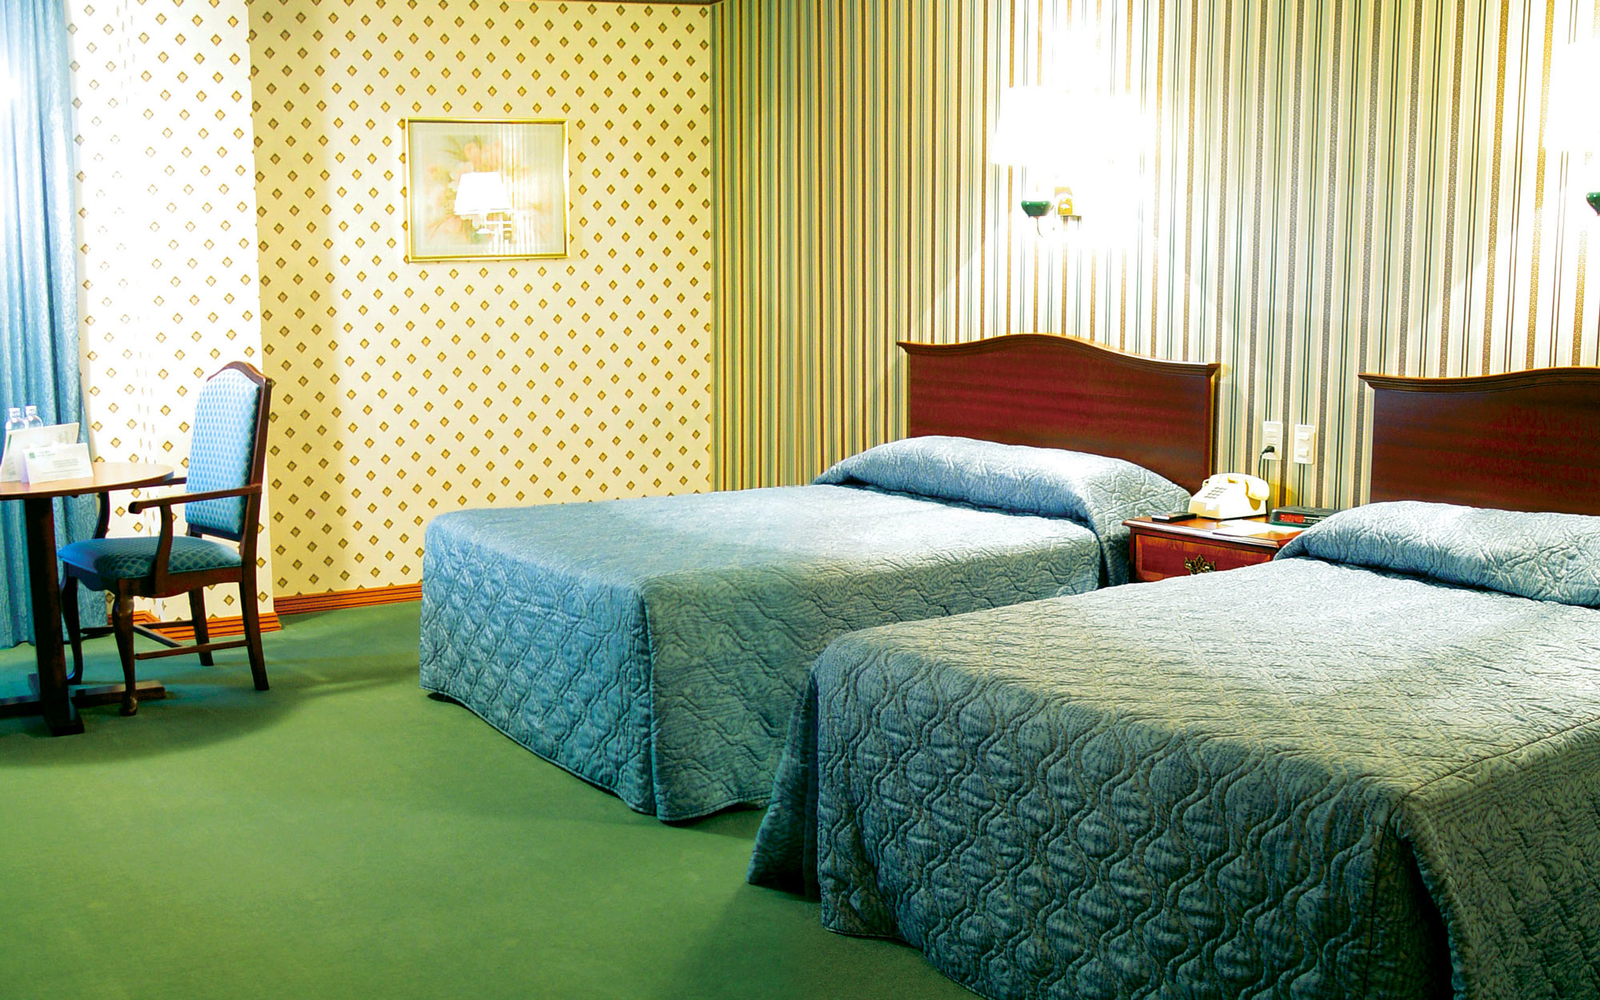 What Should You Do When There's Something Wrong With Your Hotel Room?